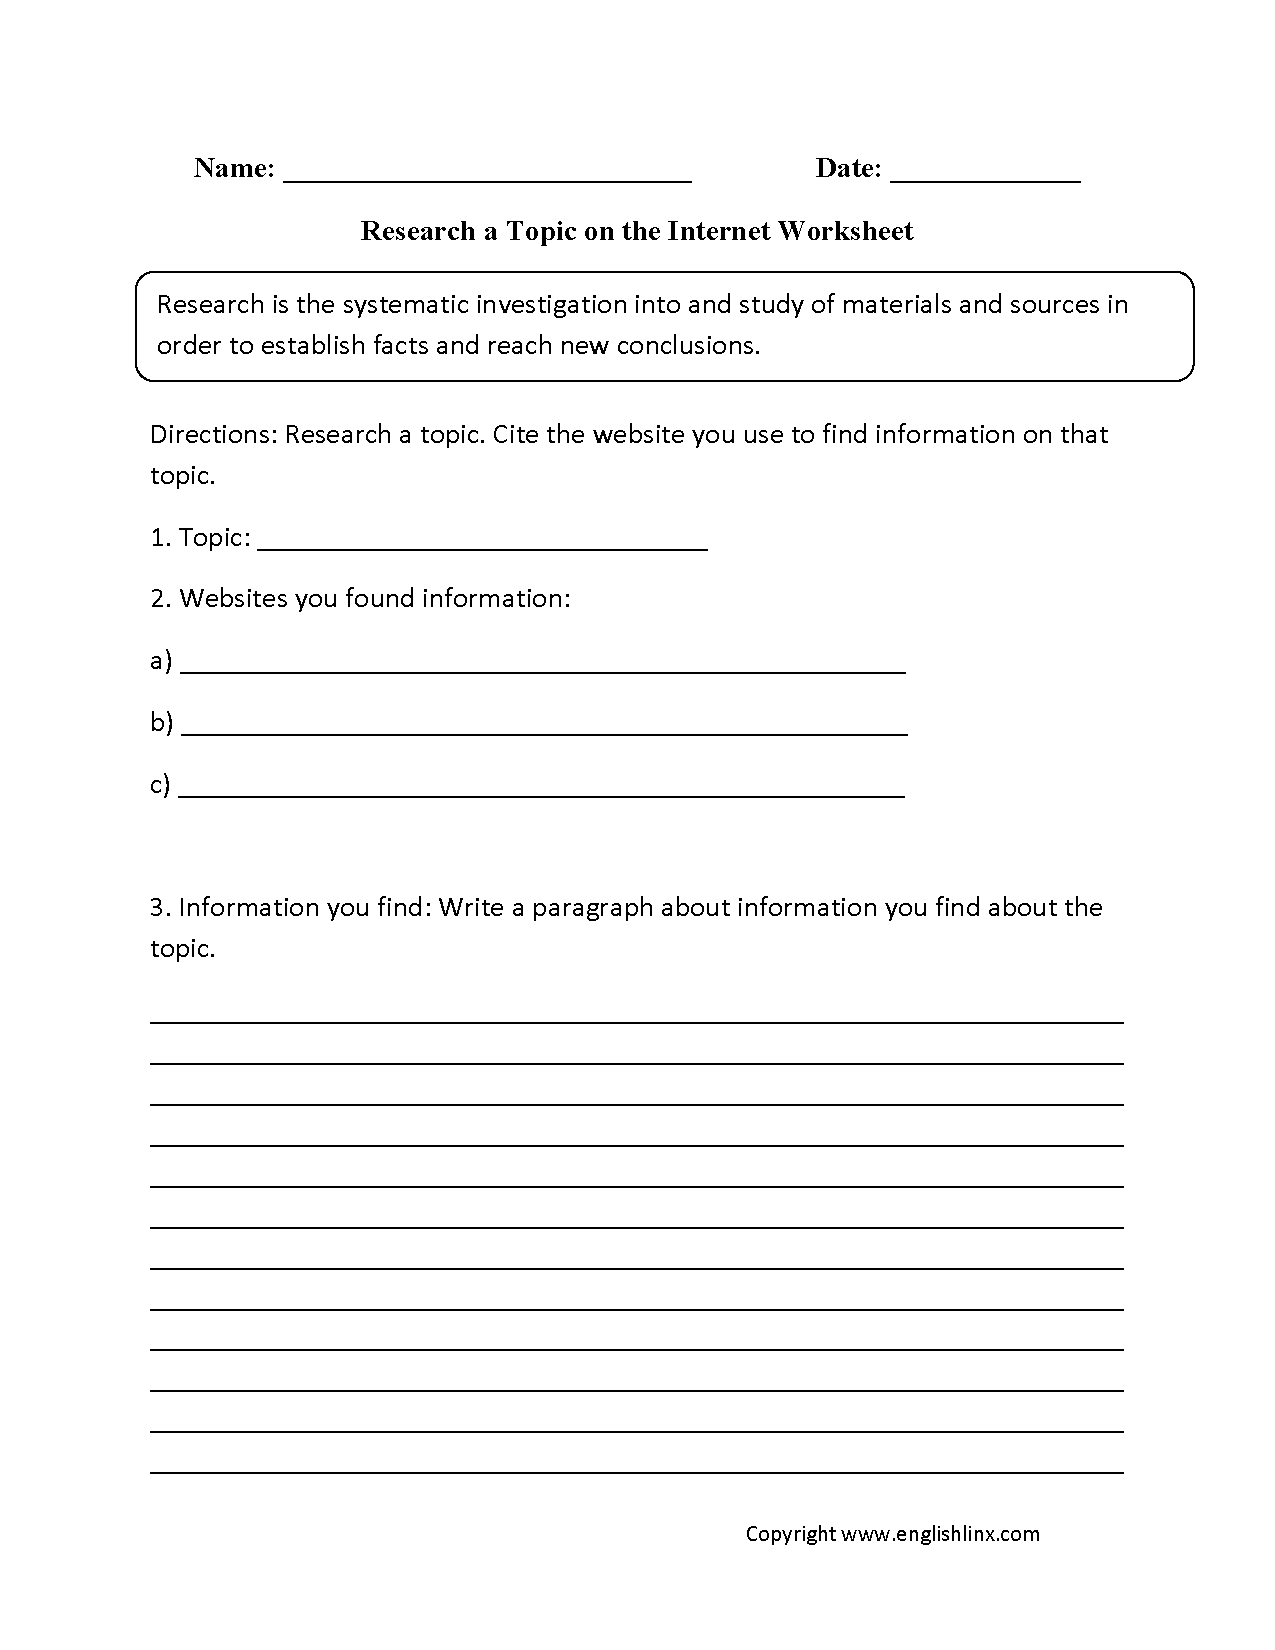 Aldiablosus  Nice Englishlinxcom  Research Worksheets With Handsome On The Internet Worksheet With Charming Fraction Number Lines Worksheets Also Printable Worksheets For Kindergarten And First Grade In Addition Continents And Oceans Map Worksheet And Super Teacher Worksheets Order Of Operations As Well As Main Idea Worksheets Nd Grade Free Additionally Math Worksheet Th Grade From Englishlinxcom With Aldiablosus  Handsome Englishlinxcom  Research Worksheets With Charming On The Internet Worksheet And Nice Fraction Number Lines Worksheets Also Printable Worksheets For Kindergarten And First Grade In Addition Continents And Oceans Map Worksheet From Englishlinxcom